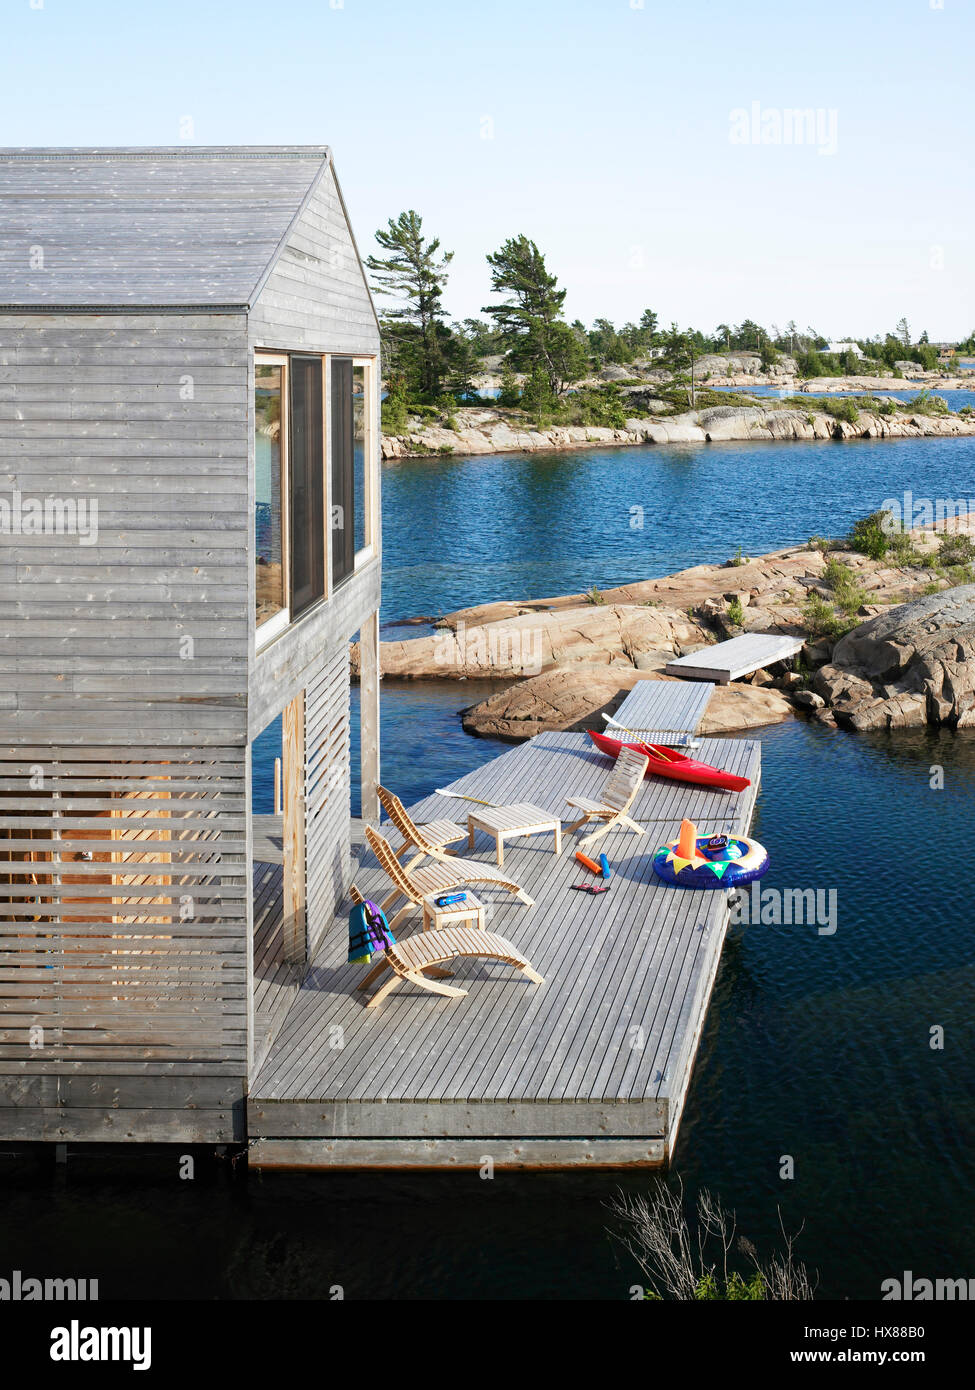 Exterior View Of The Deck Below The Dining Room. Floating House, Private  Island, Georgian Bay, Lake Huron, Canada. Architect: MOS Architects, 2007